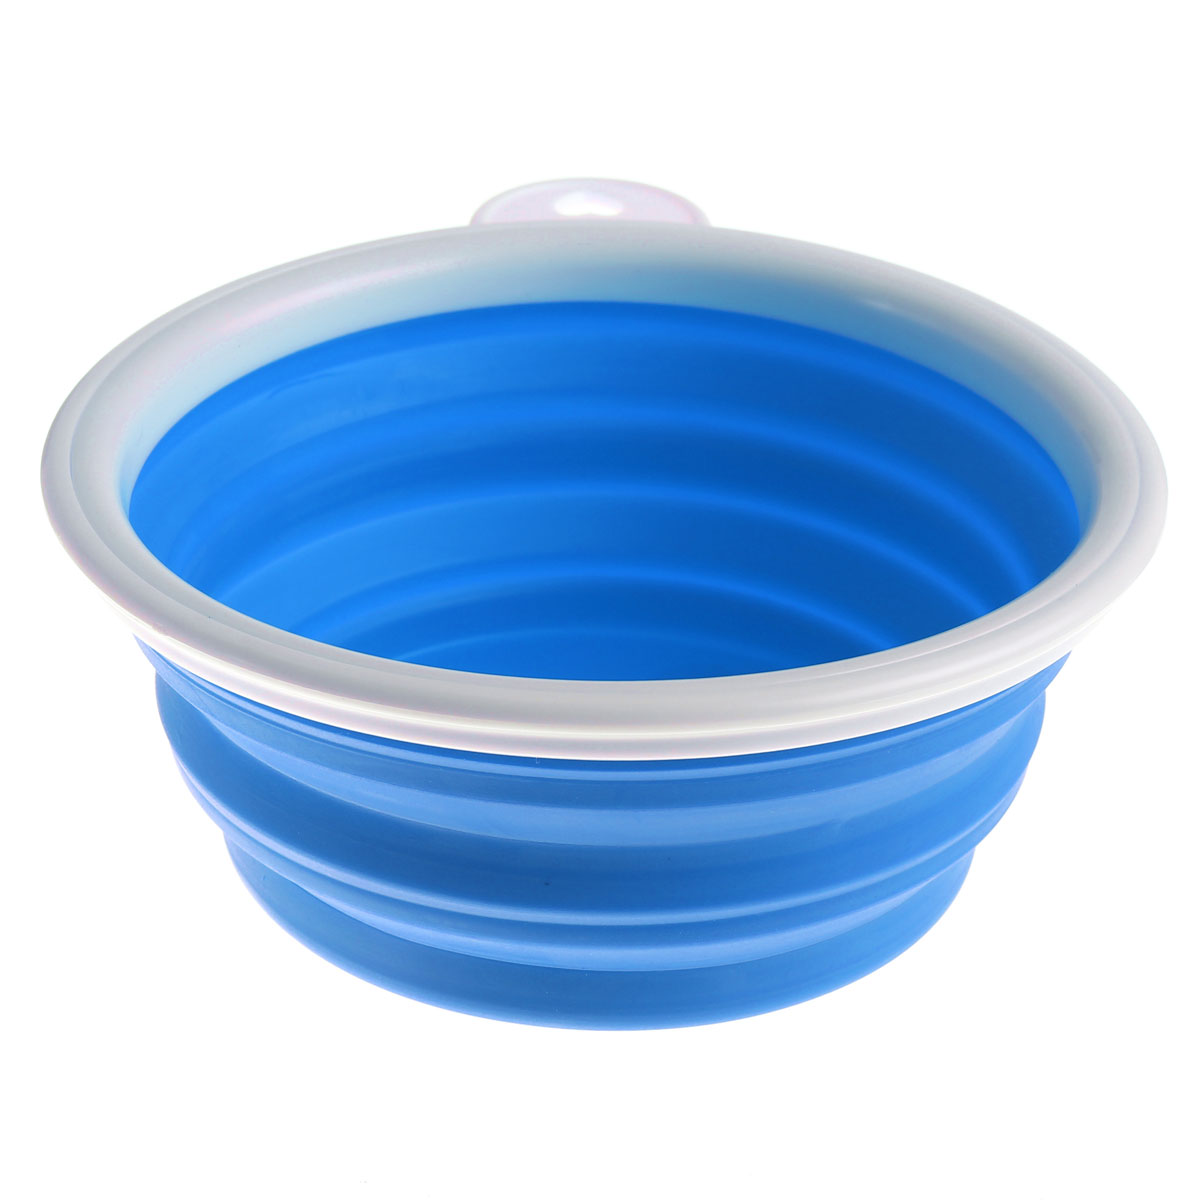 Portable Dog Water Bowls Bowl For Large Breed Dogs Premium: Portable Collapsible Folding Travel Pet Feeding Bowl Dog